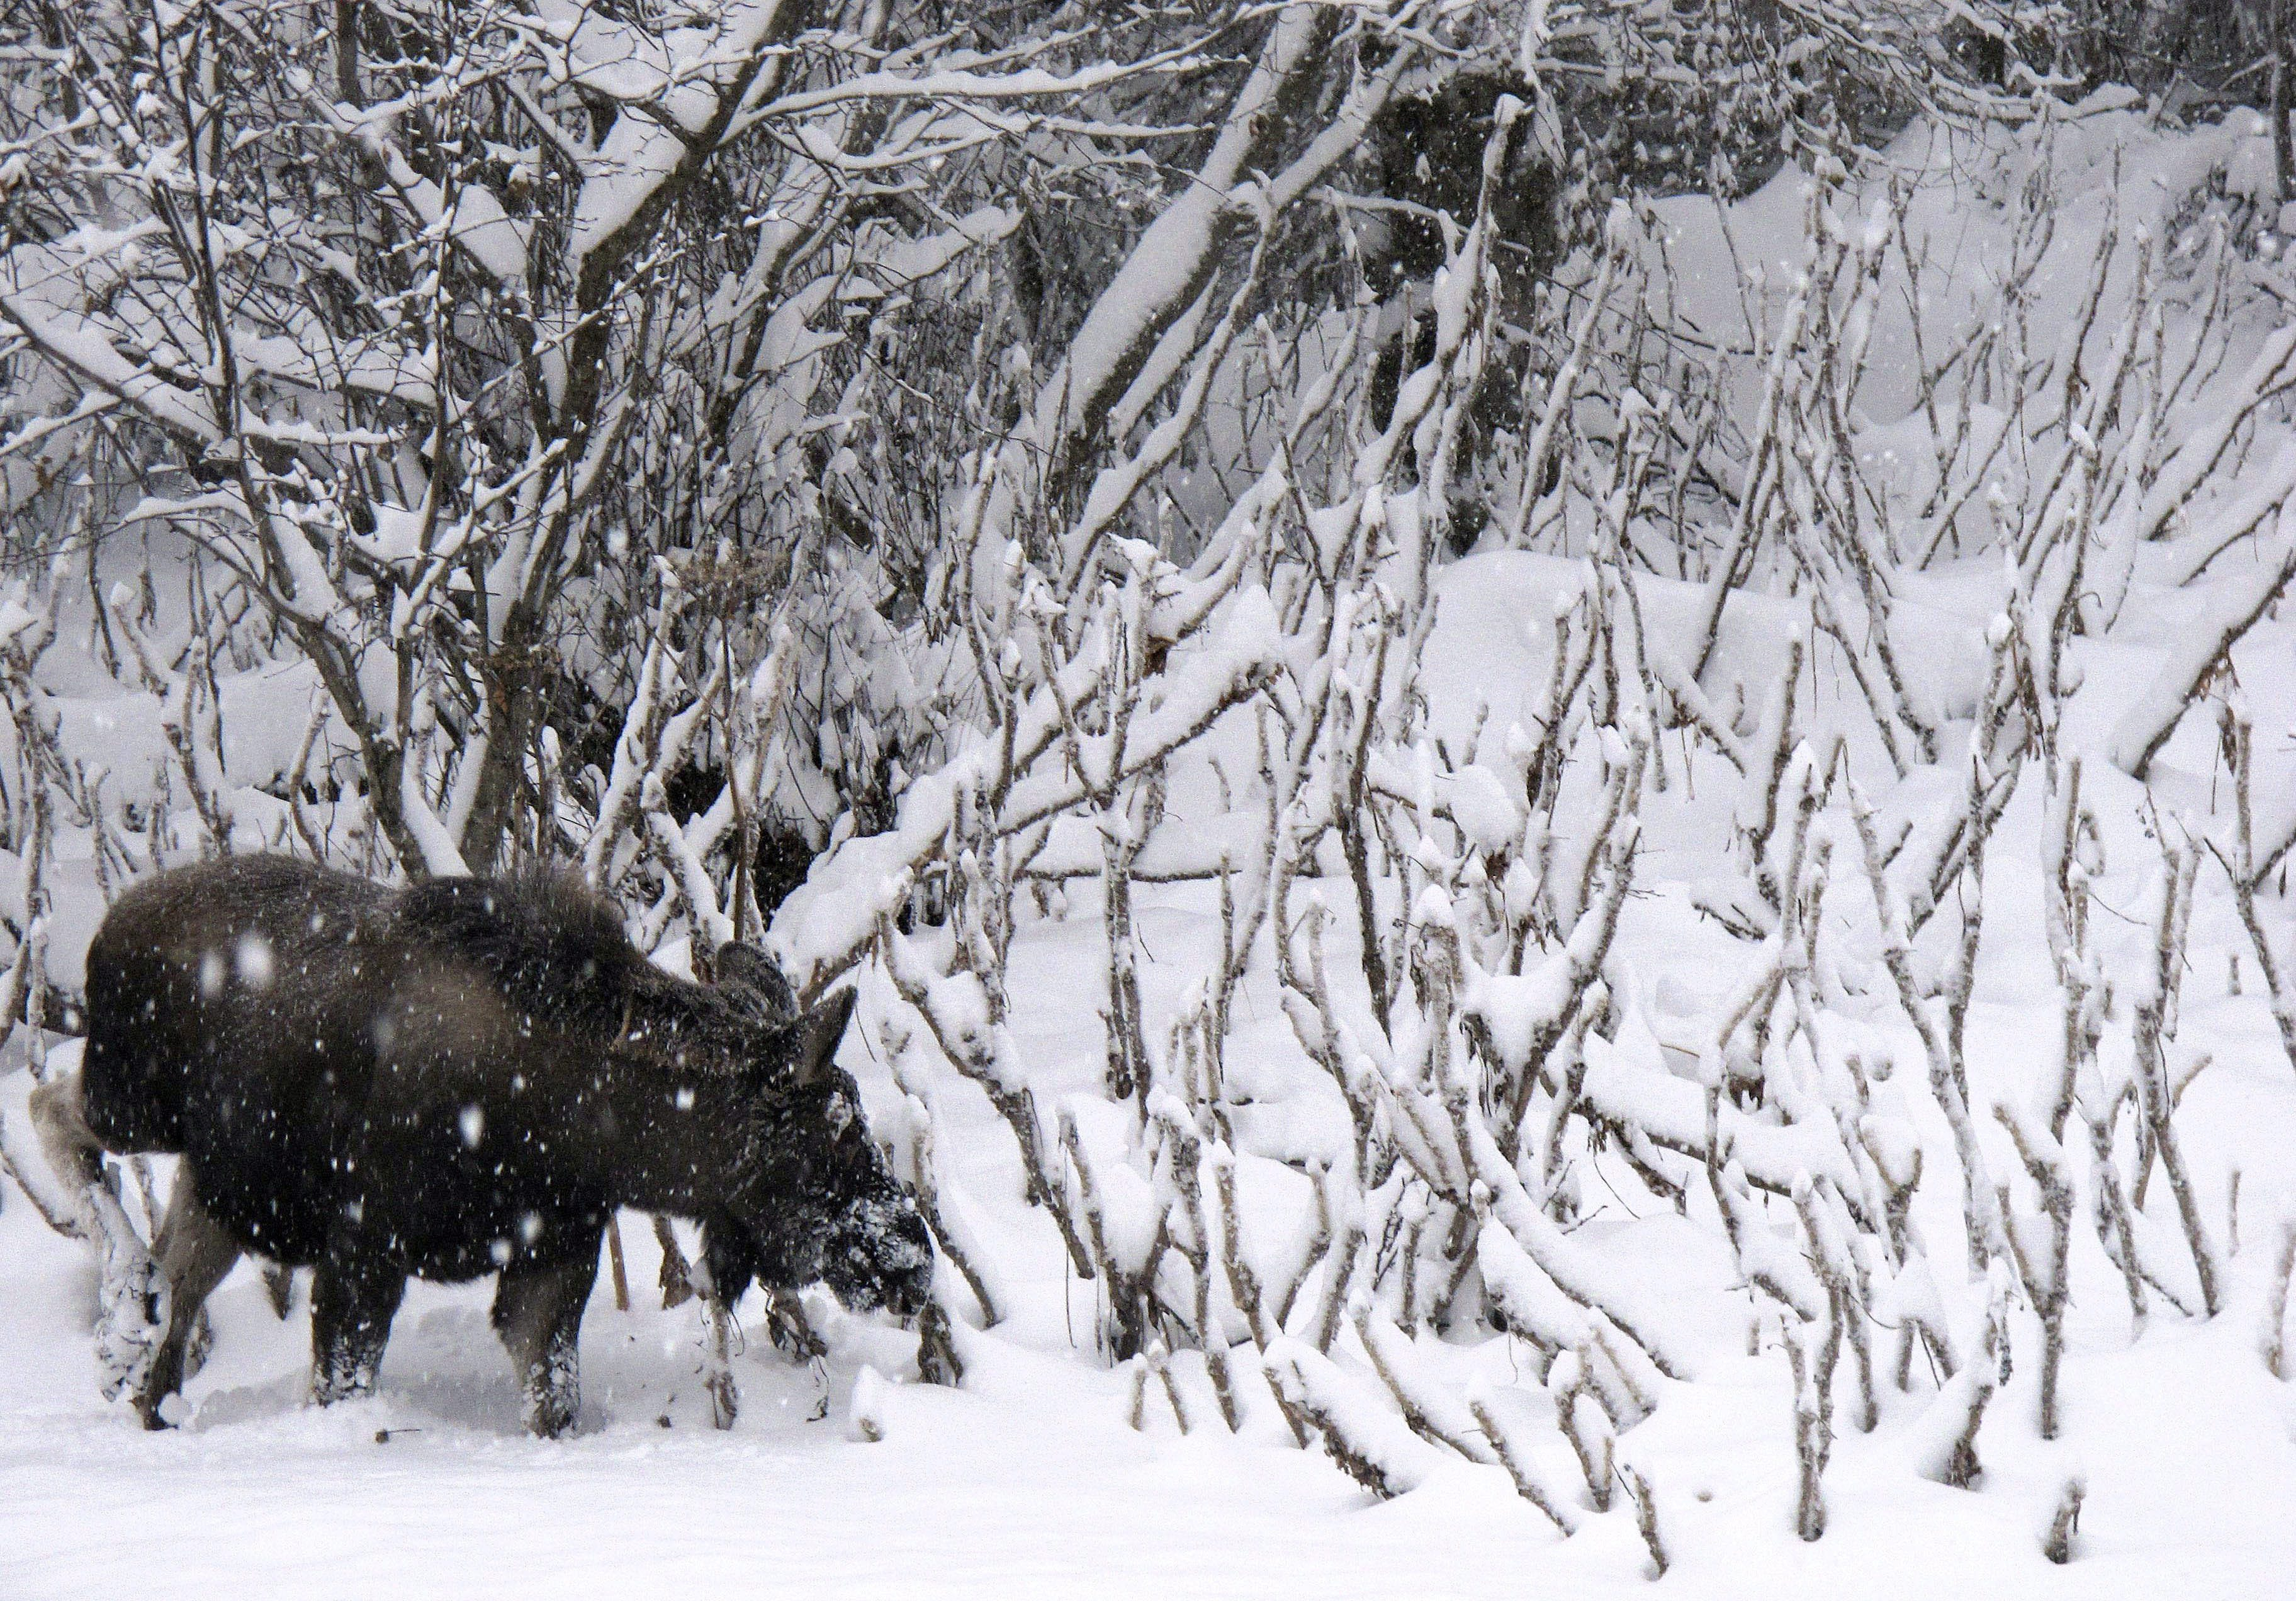 A moose grazes along the roadway leading into Kincaid Park in Anchorage, Alaska, on Wednesday, Dec. 12, 2012. (Mark Thiessen / AP)